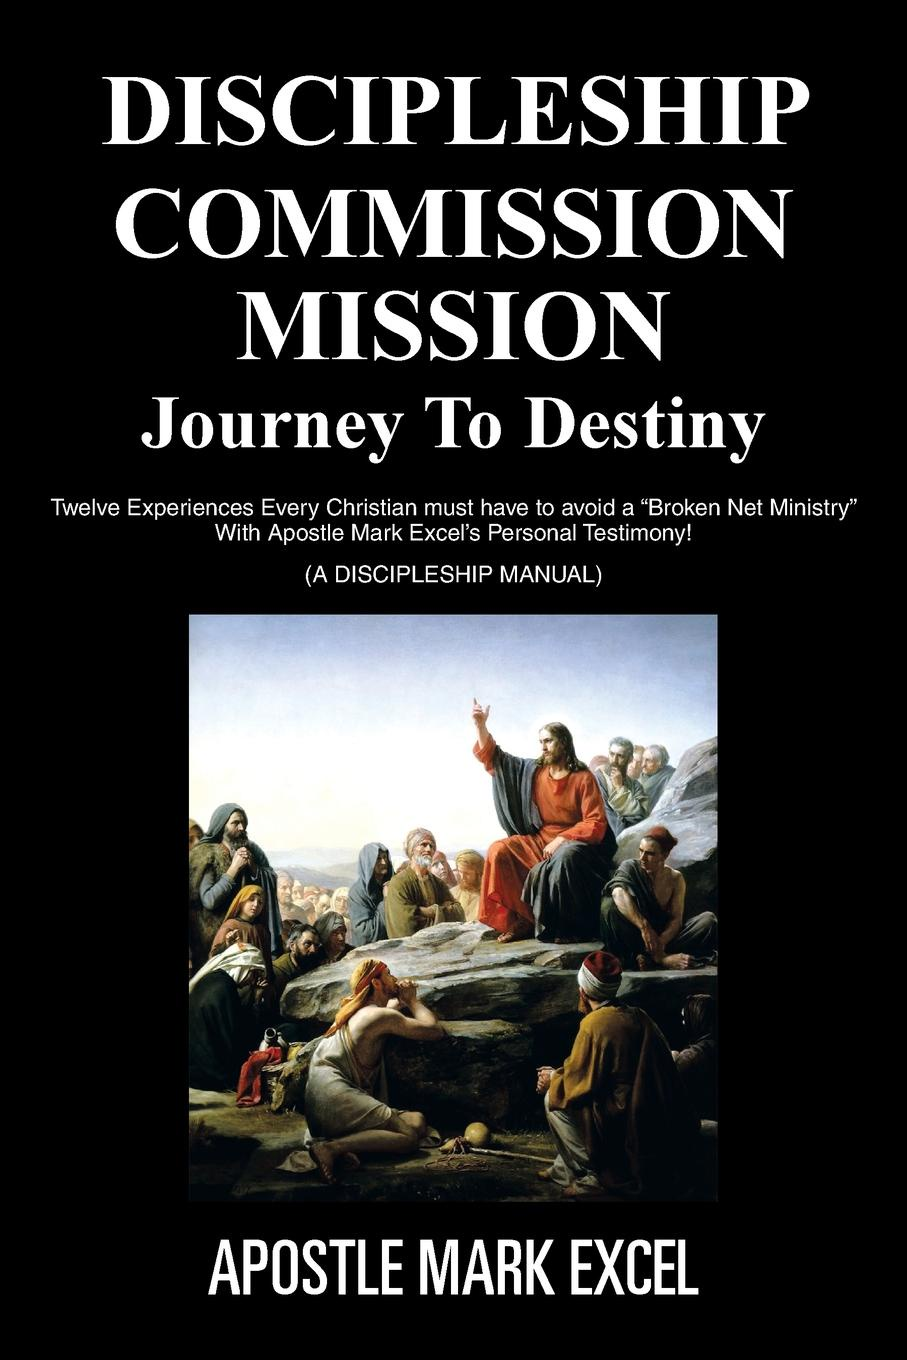 APOSTLE MARK EXCEL DISCIPLESHIP COMMISSION MISSION. JOURNEY TO DESTINY